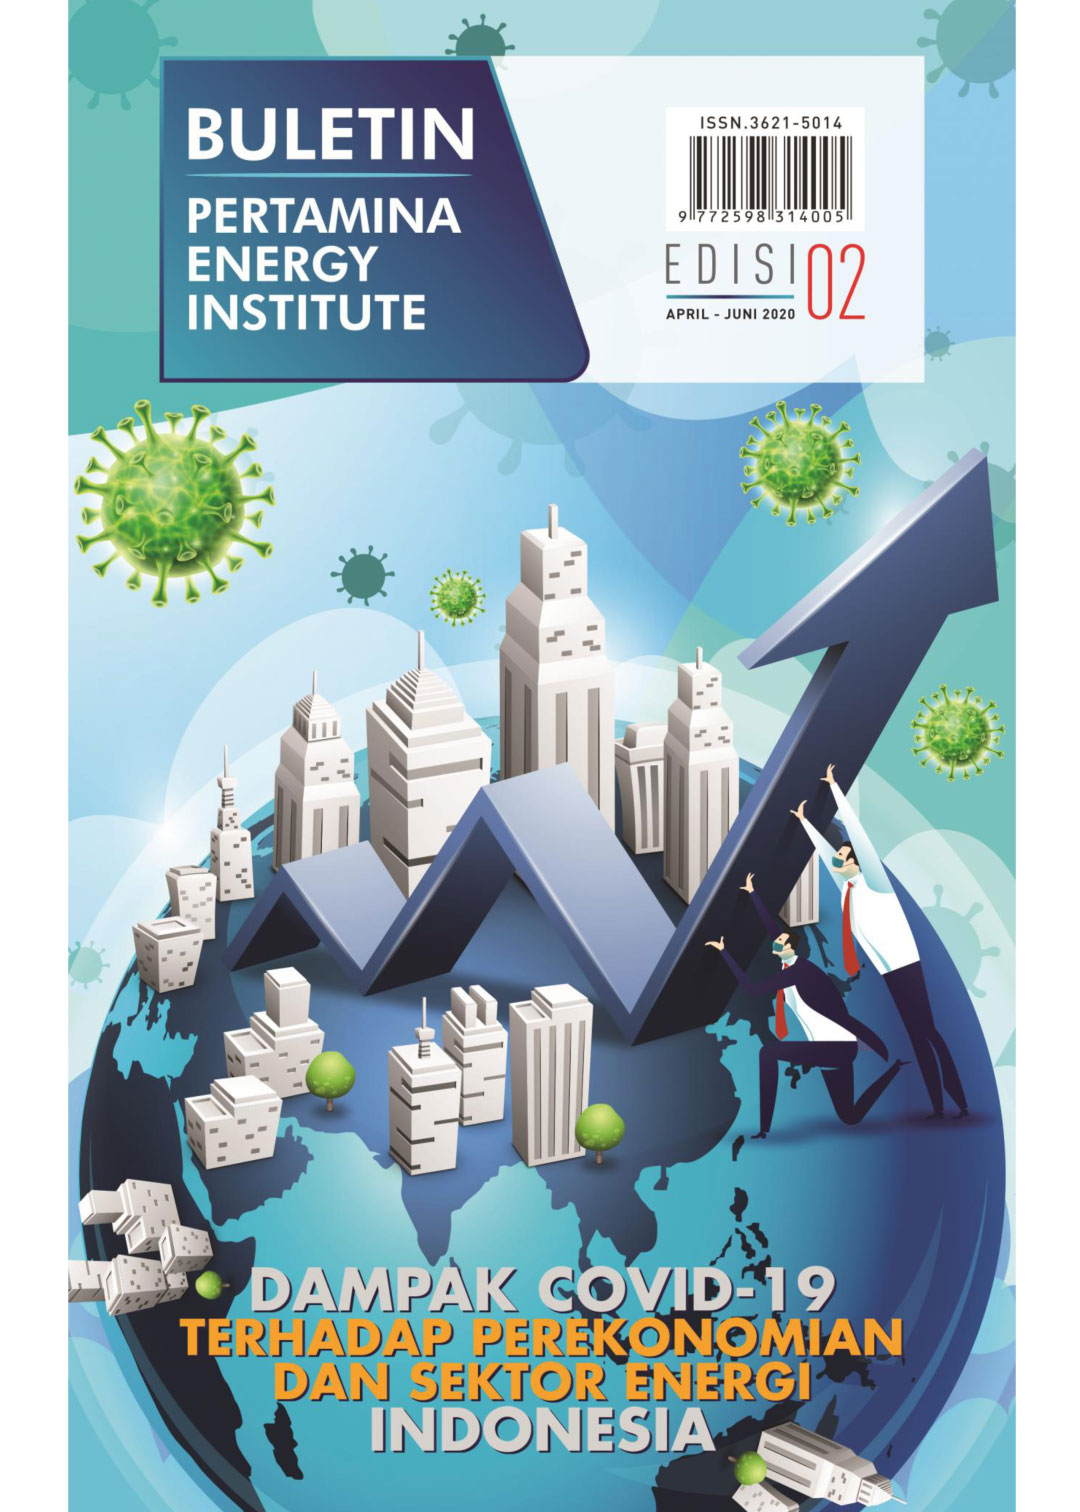 Pertamina Energy Institute - Edisi 02 (April - Juni 2020)